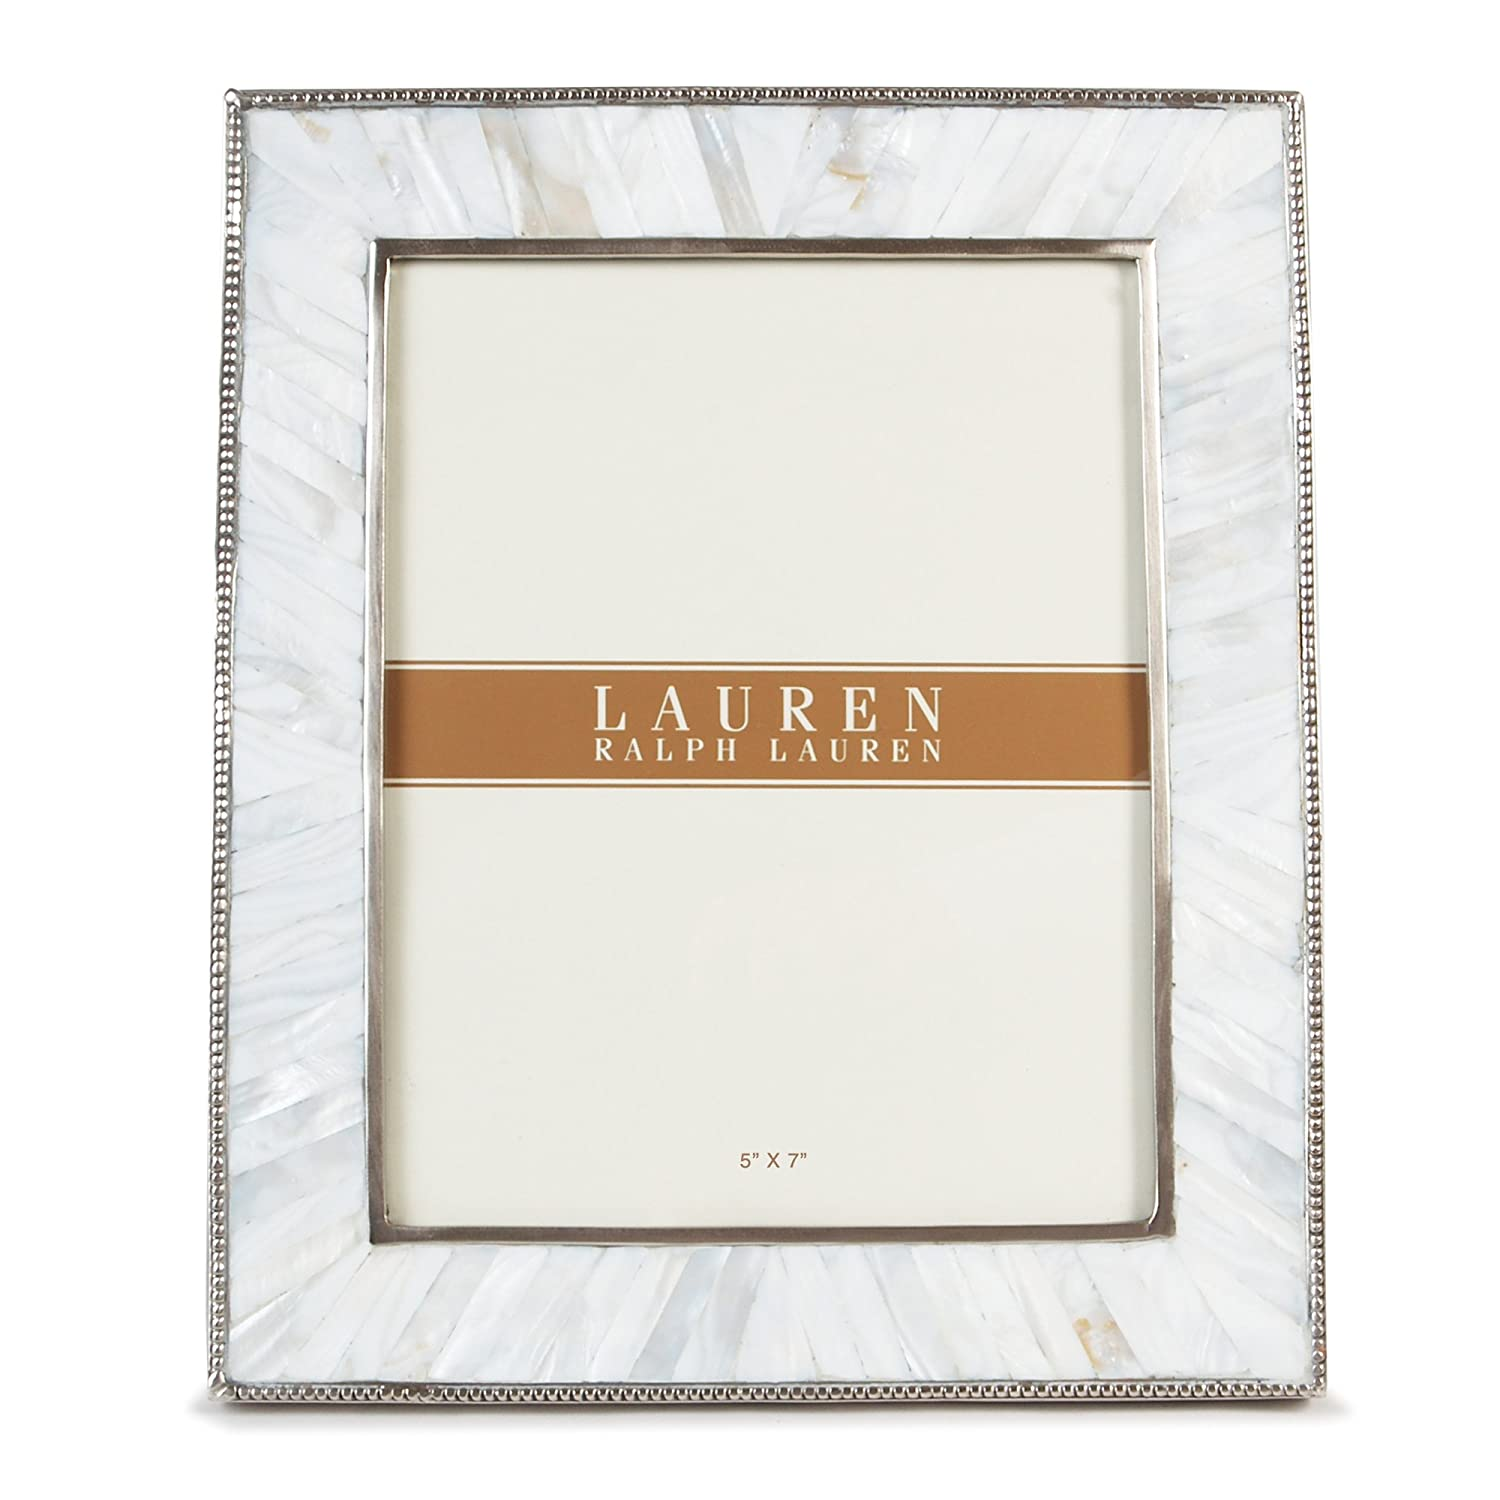 amazoncom lauren ralph lauren lauren pearl 5x7 silver frame mother of pearl photo frame - Mother Of Pearl Picture Frame